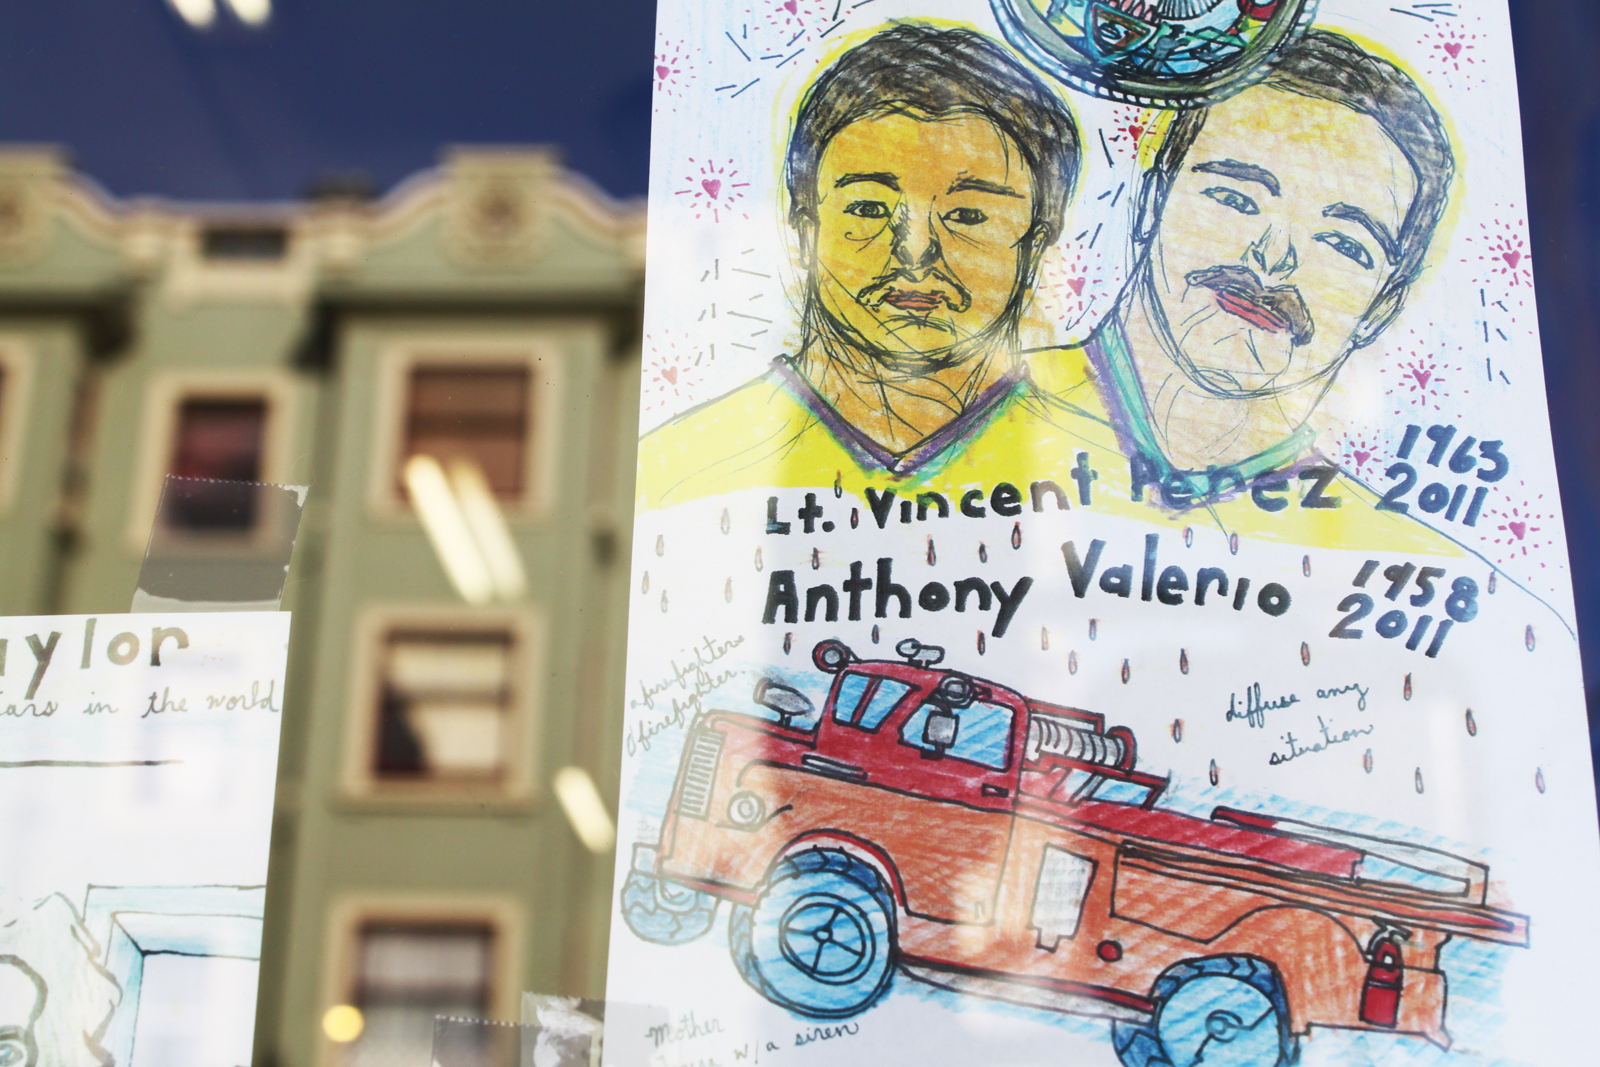 Vincent Perez and Anthony Valerio, Remembered